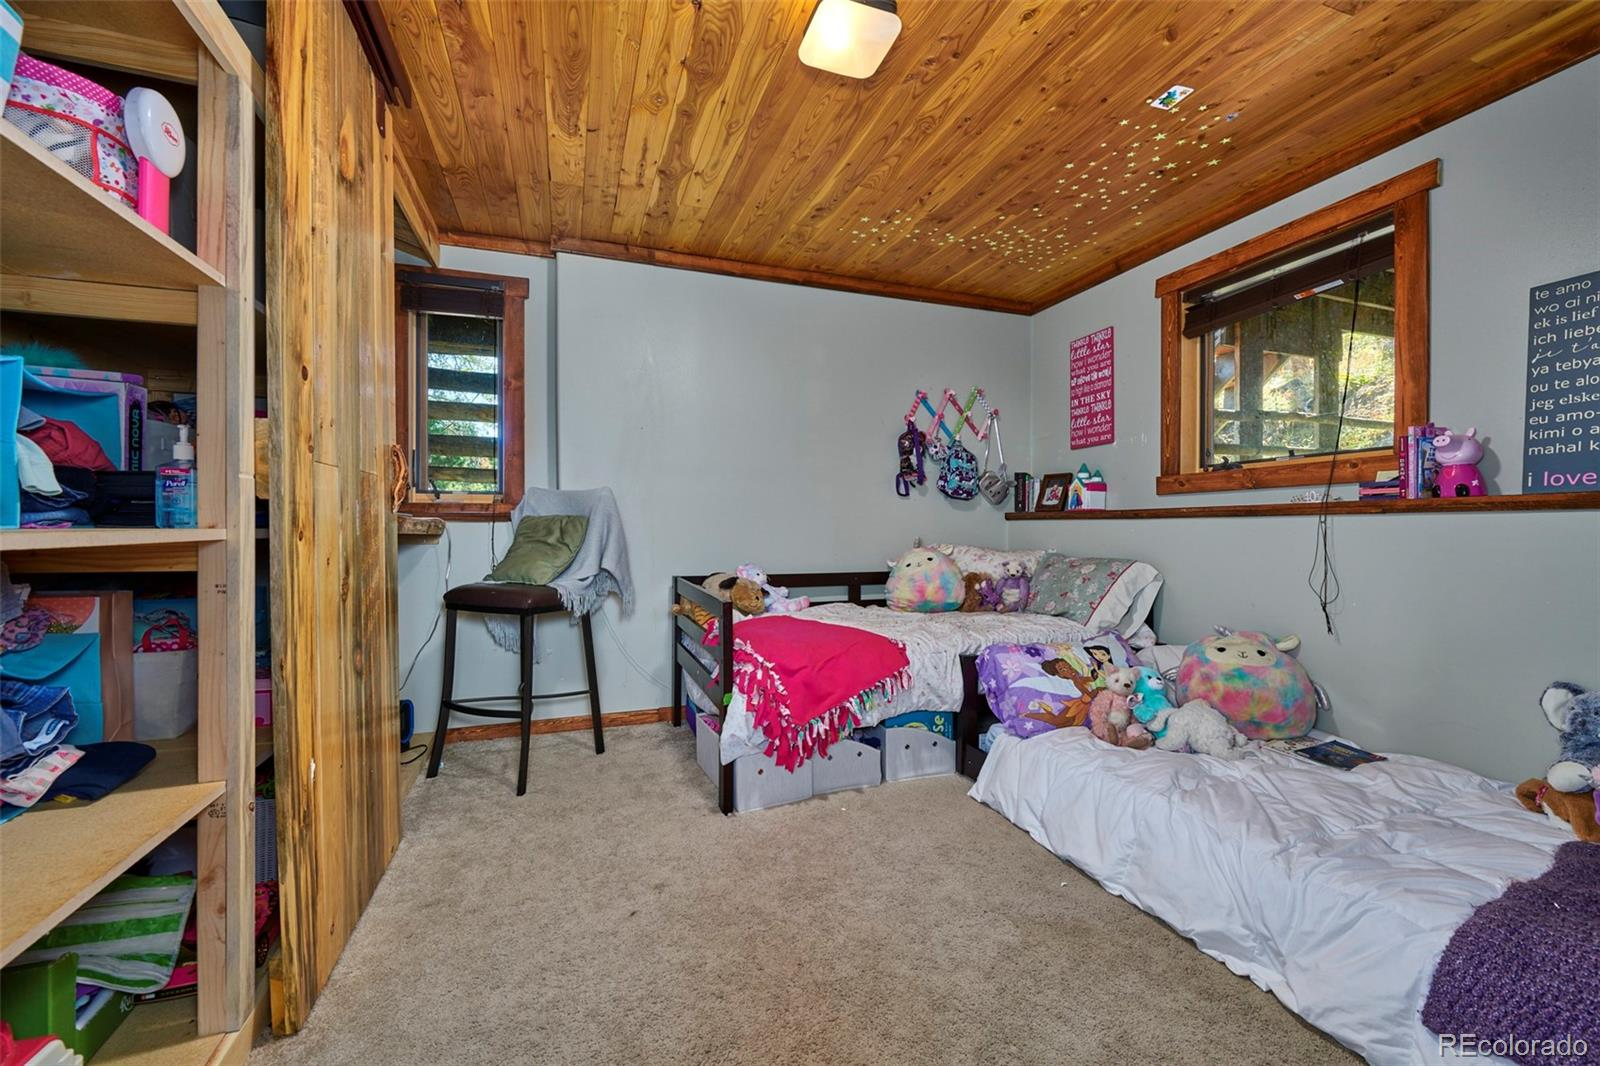 Additional downstairs bedroom